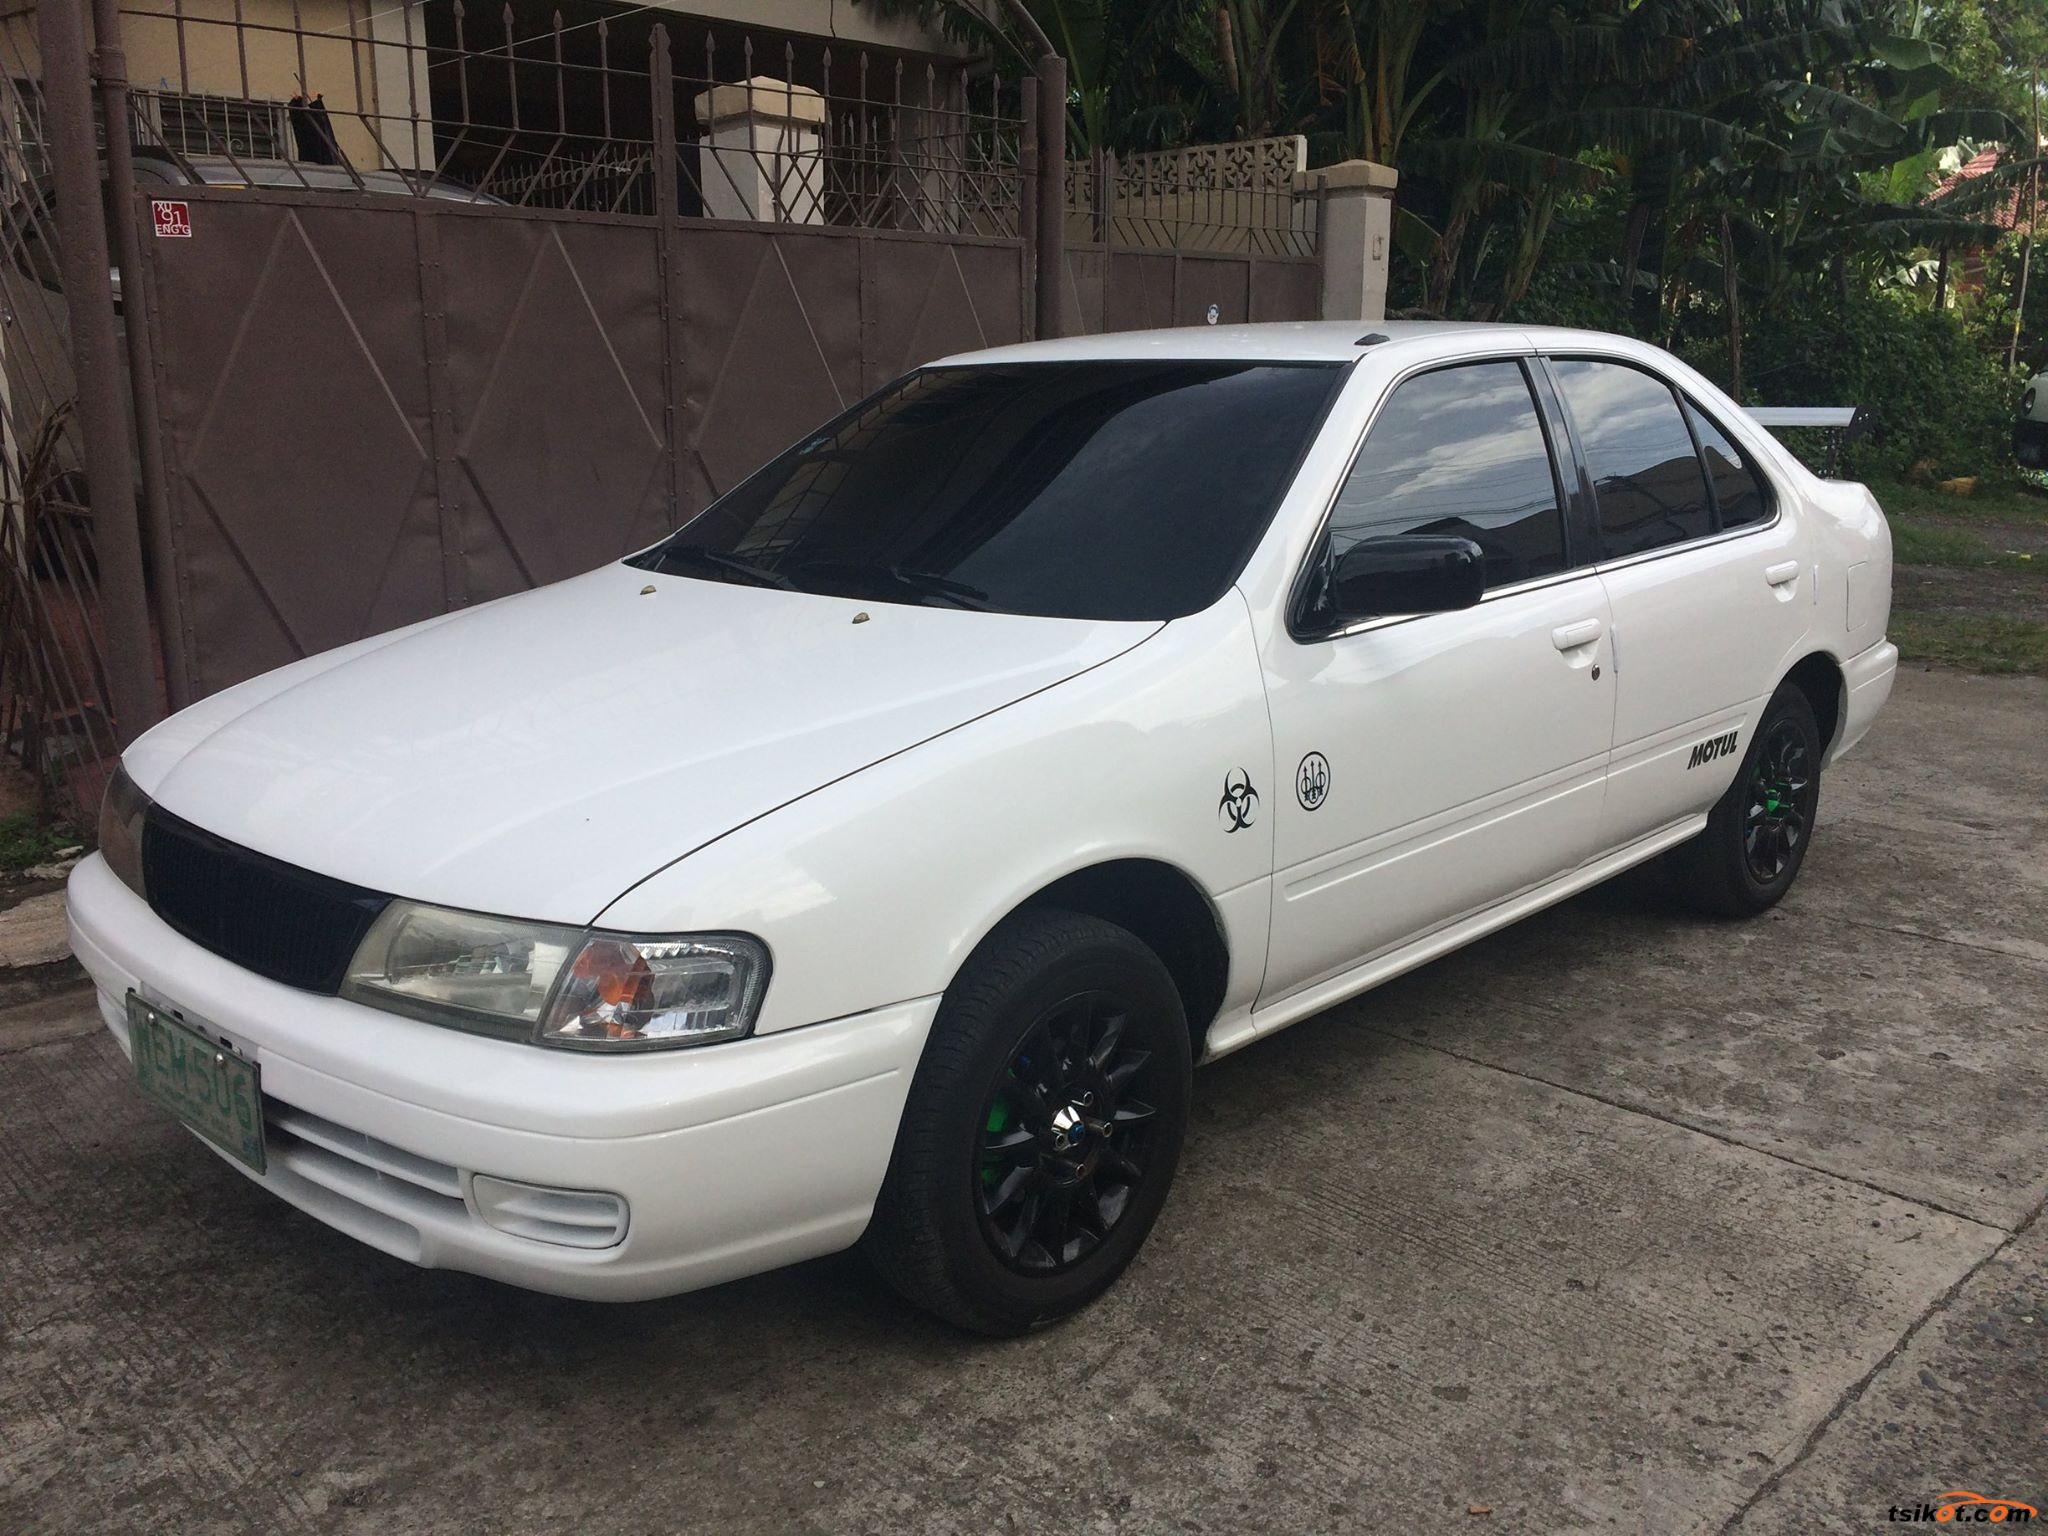 nissan sentra 1998 car for sale metro manila. Black Bedroom Furniture Sets. Home Design Ideas